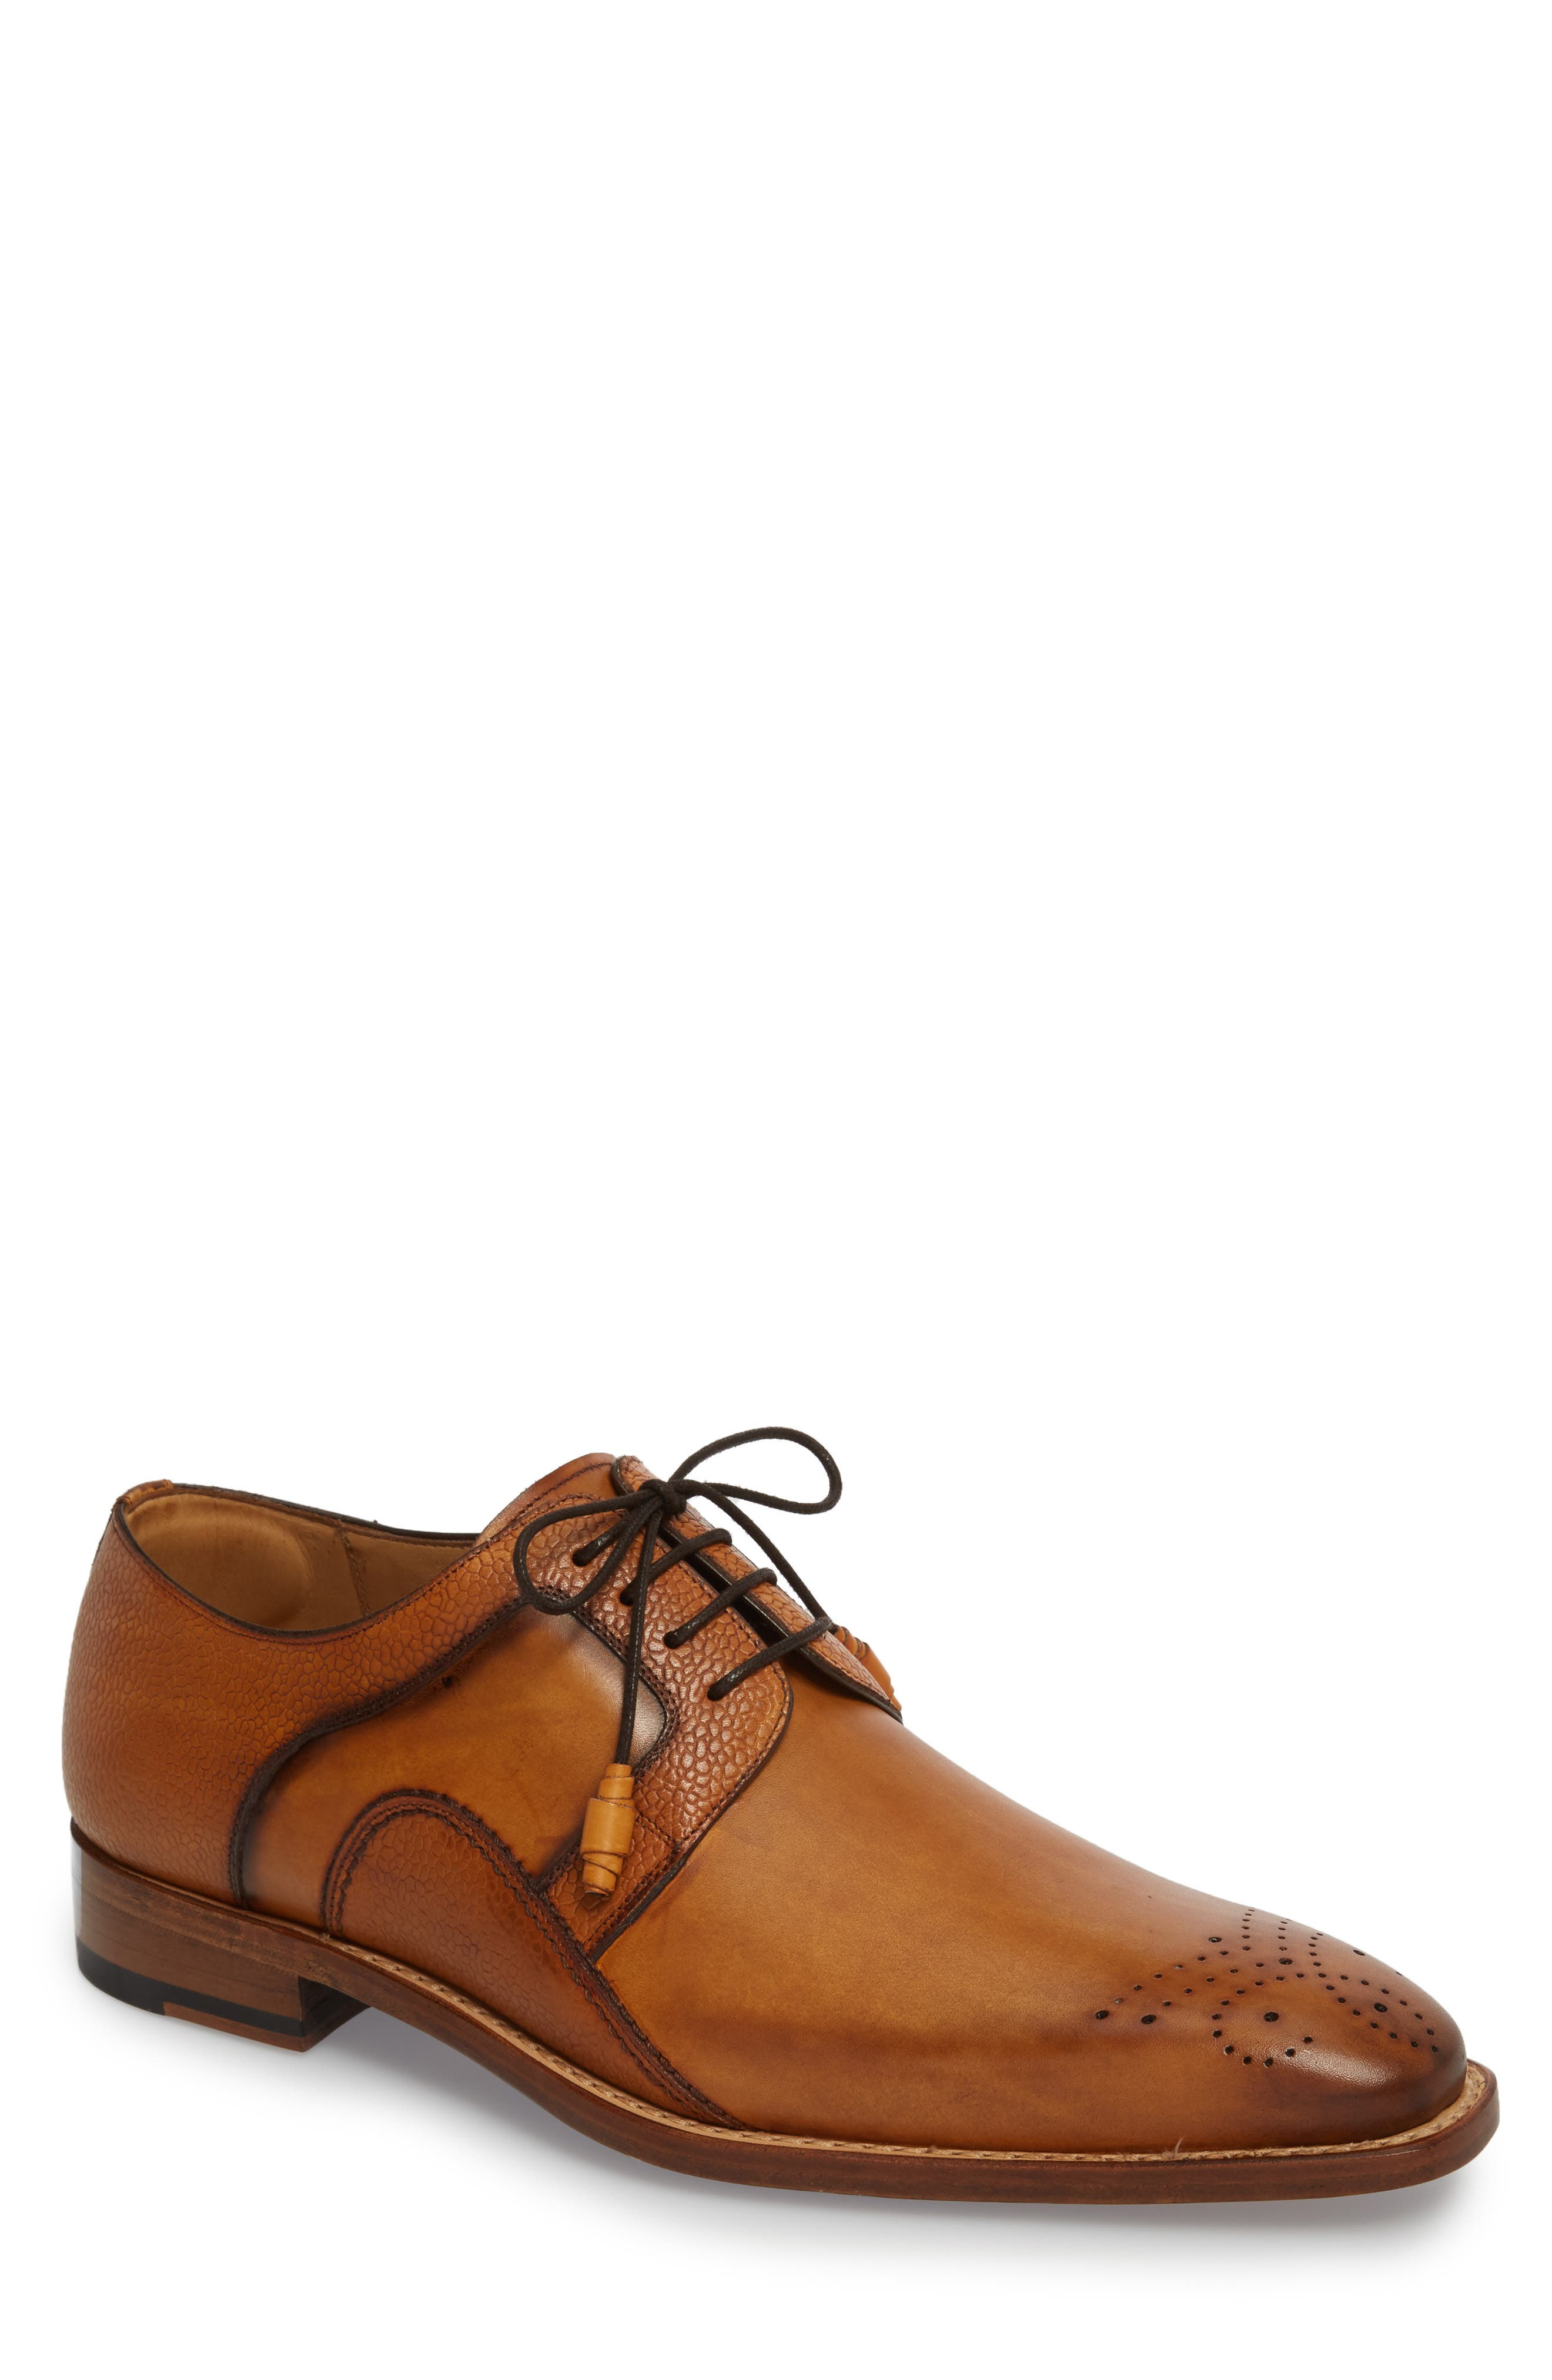 Saturno Medallion Toe Derby,                         Main,                         color, TAN LEATHER